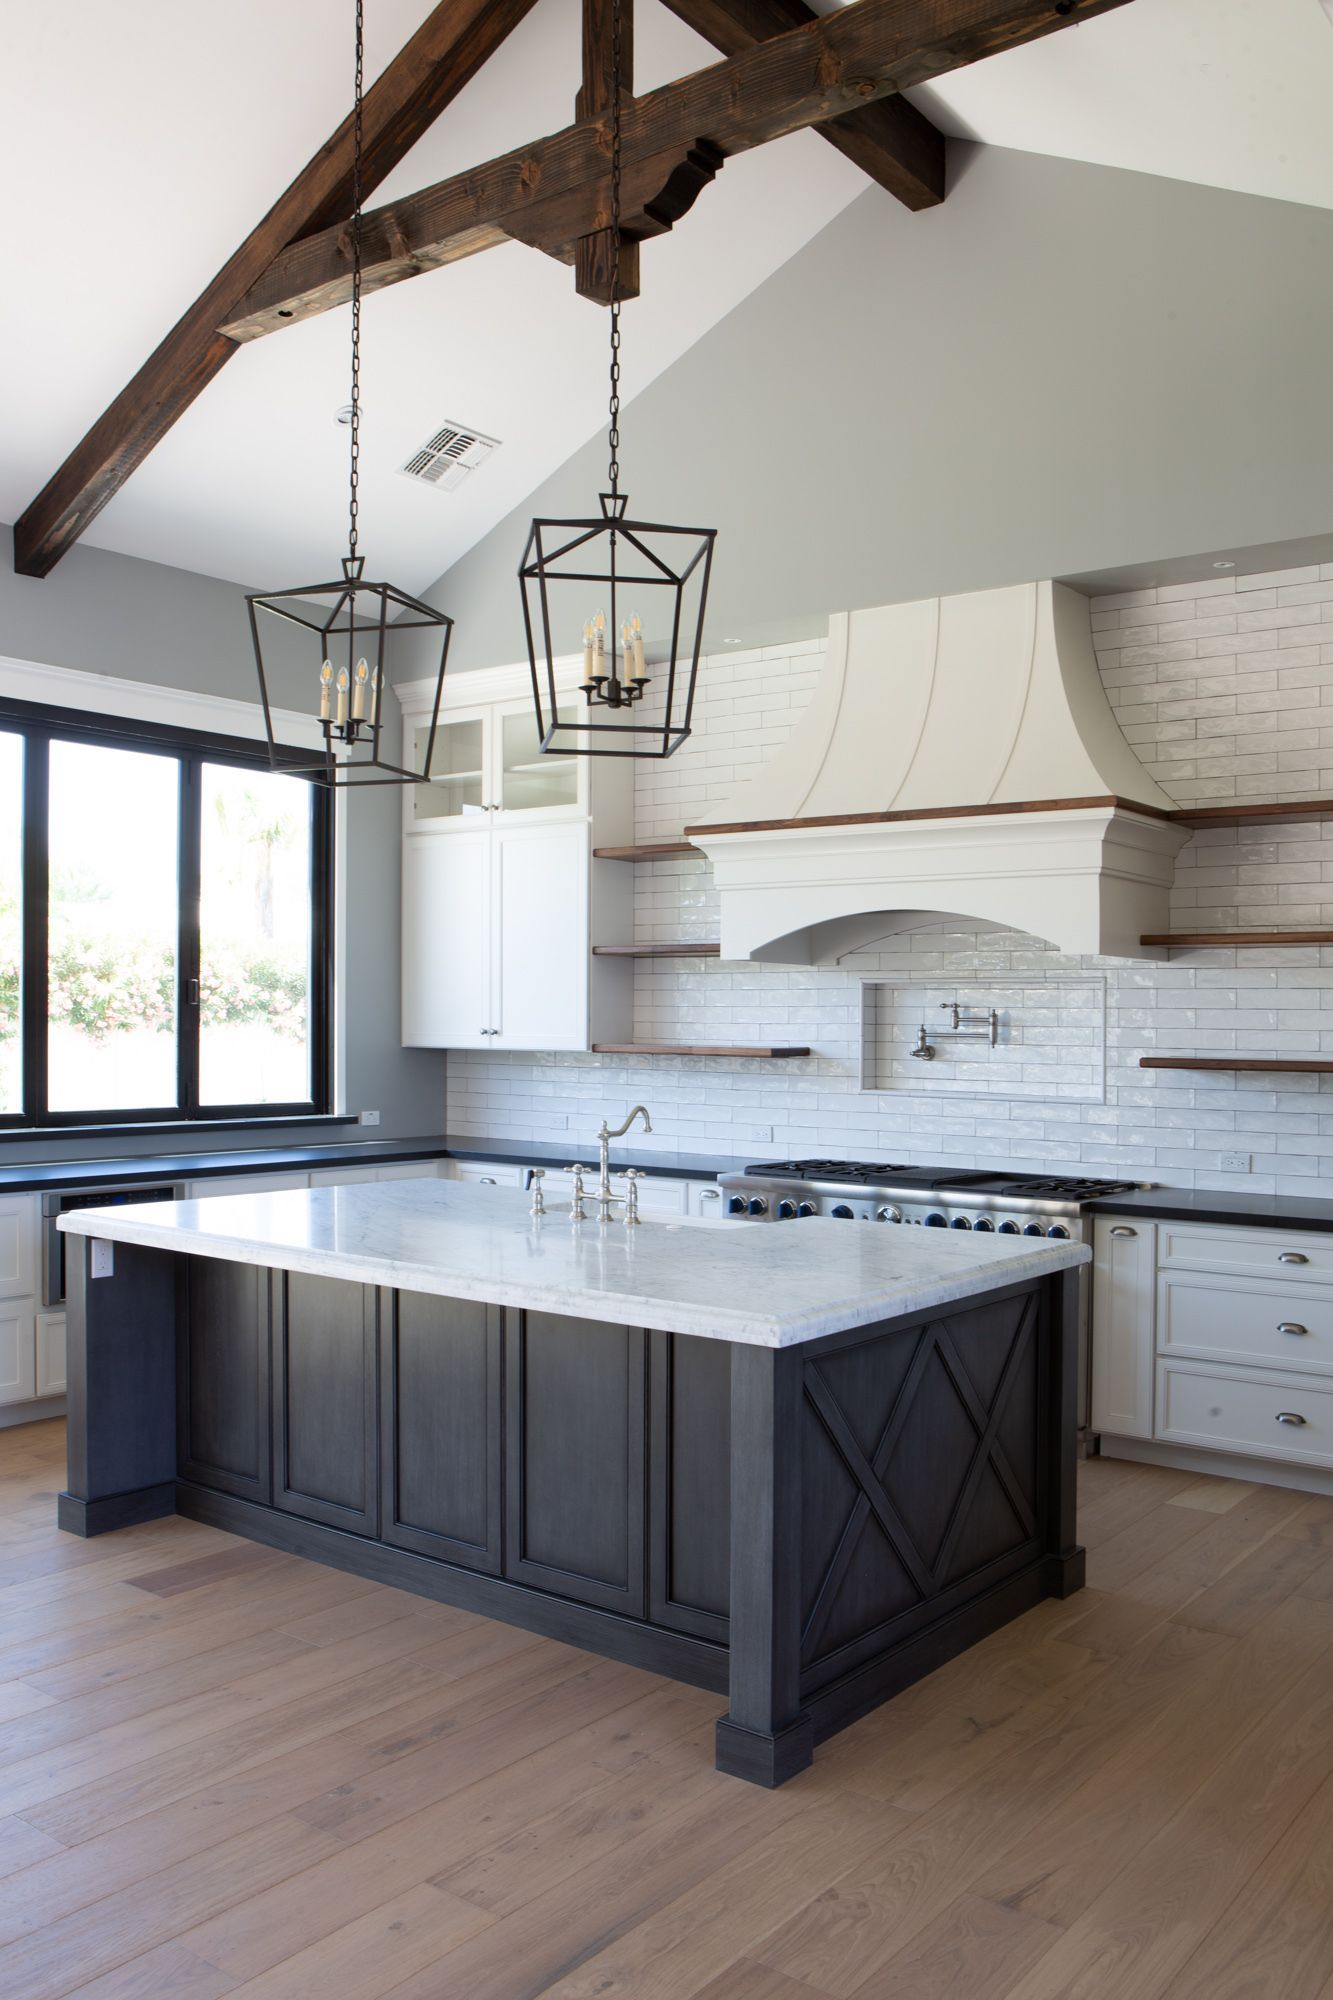 Home Remodel Contractors Custom farmhouse style island with exposed open beam work above.